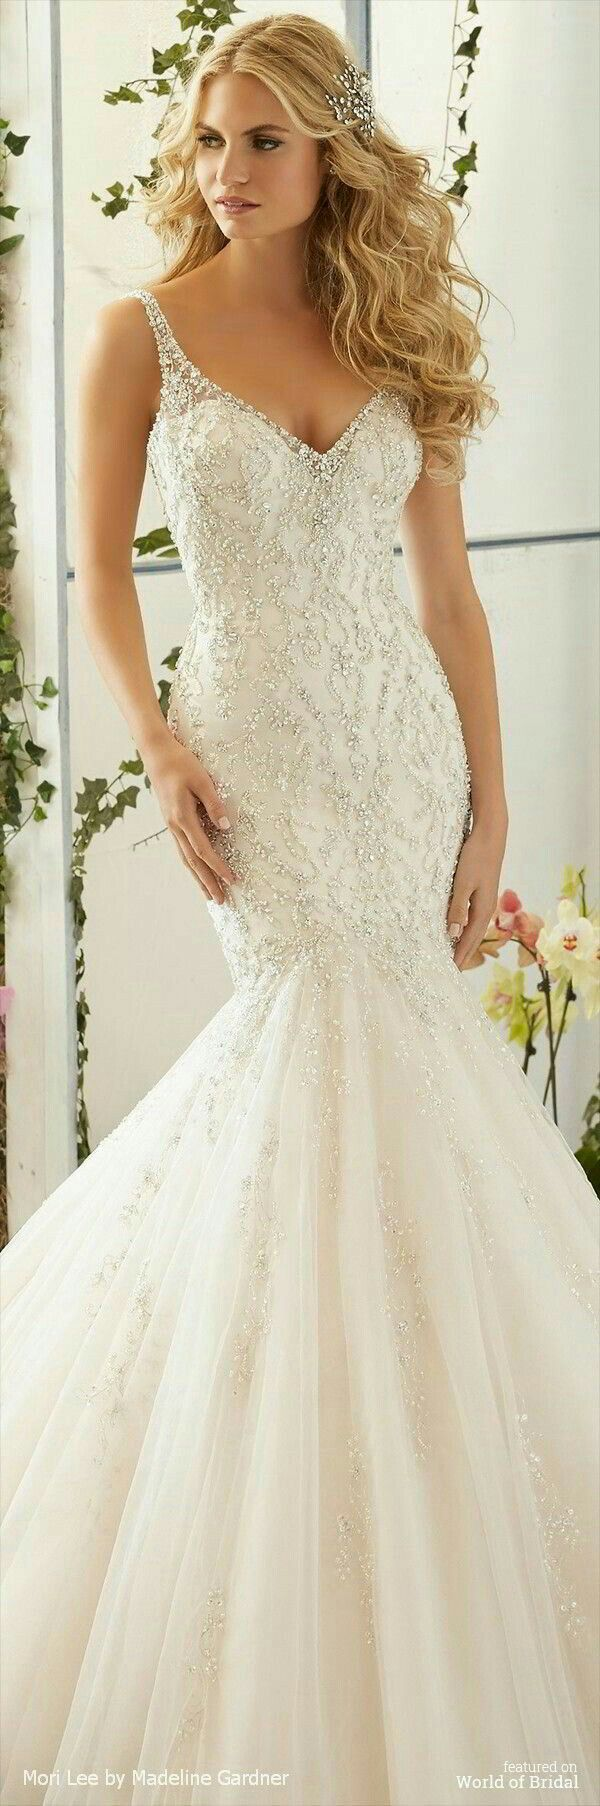 42 best Bliss Gowns: Mori Lee images on Pinterest | Wedding frocks ...